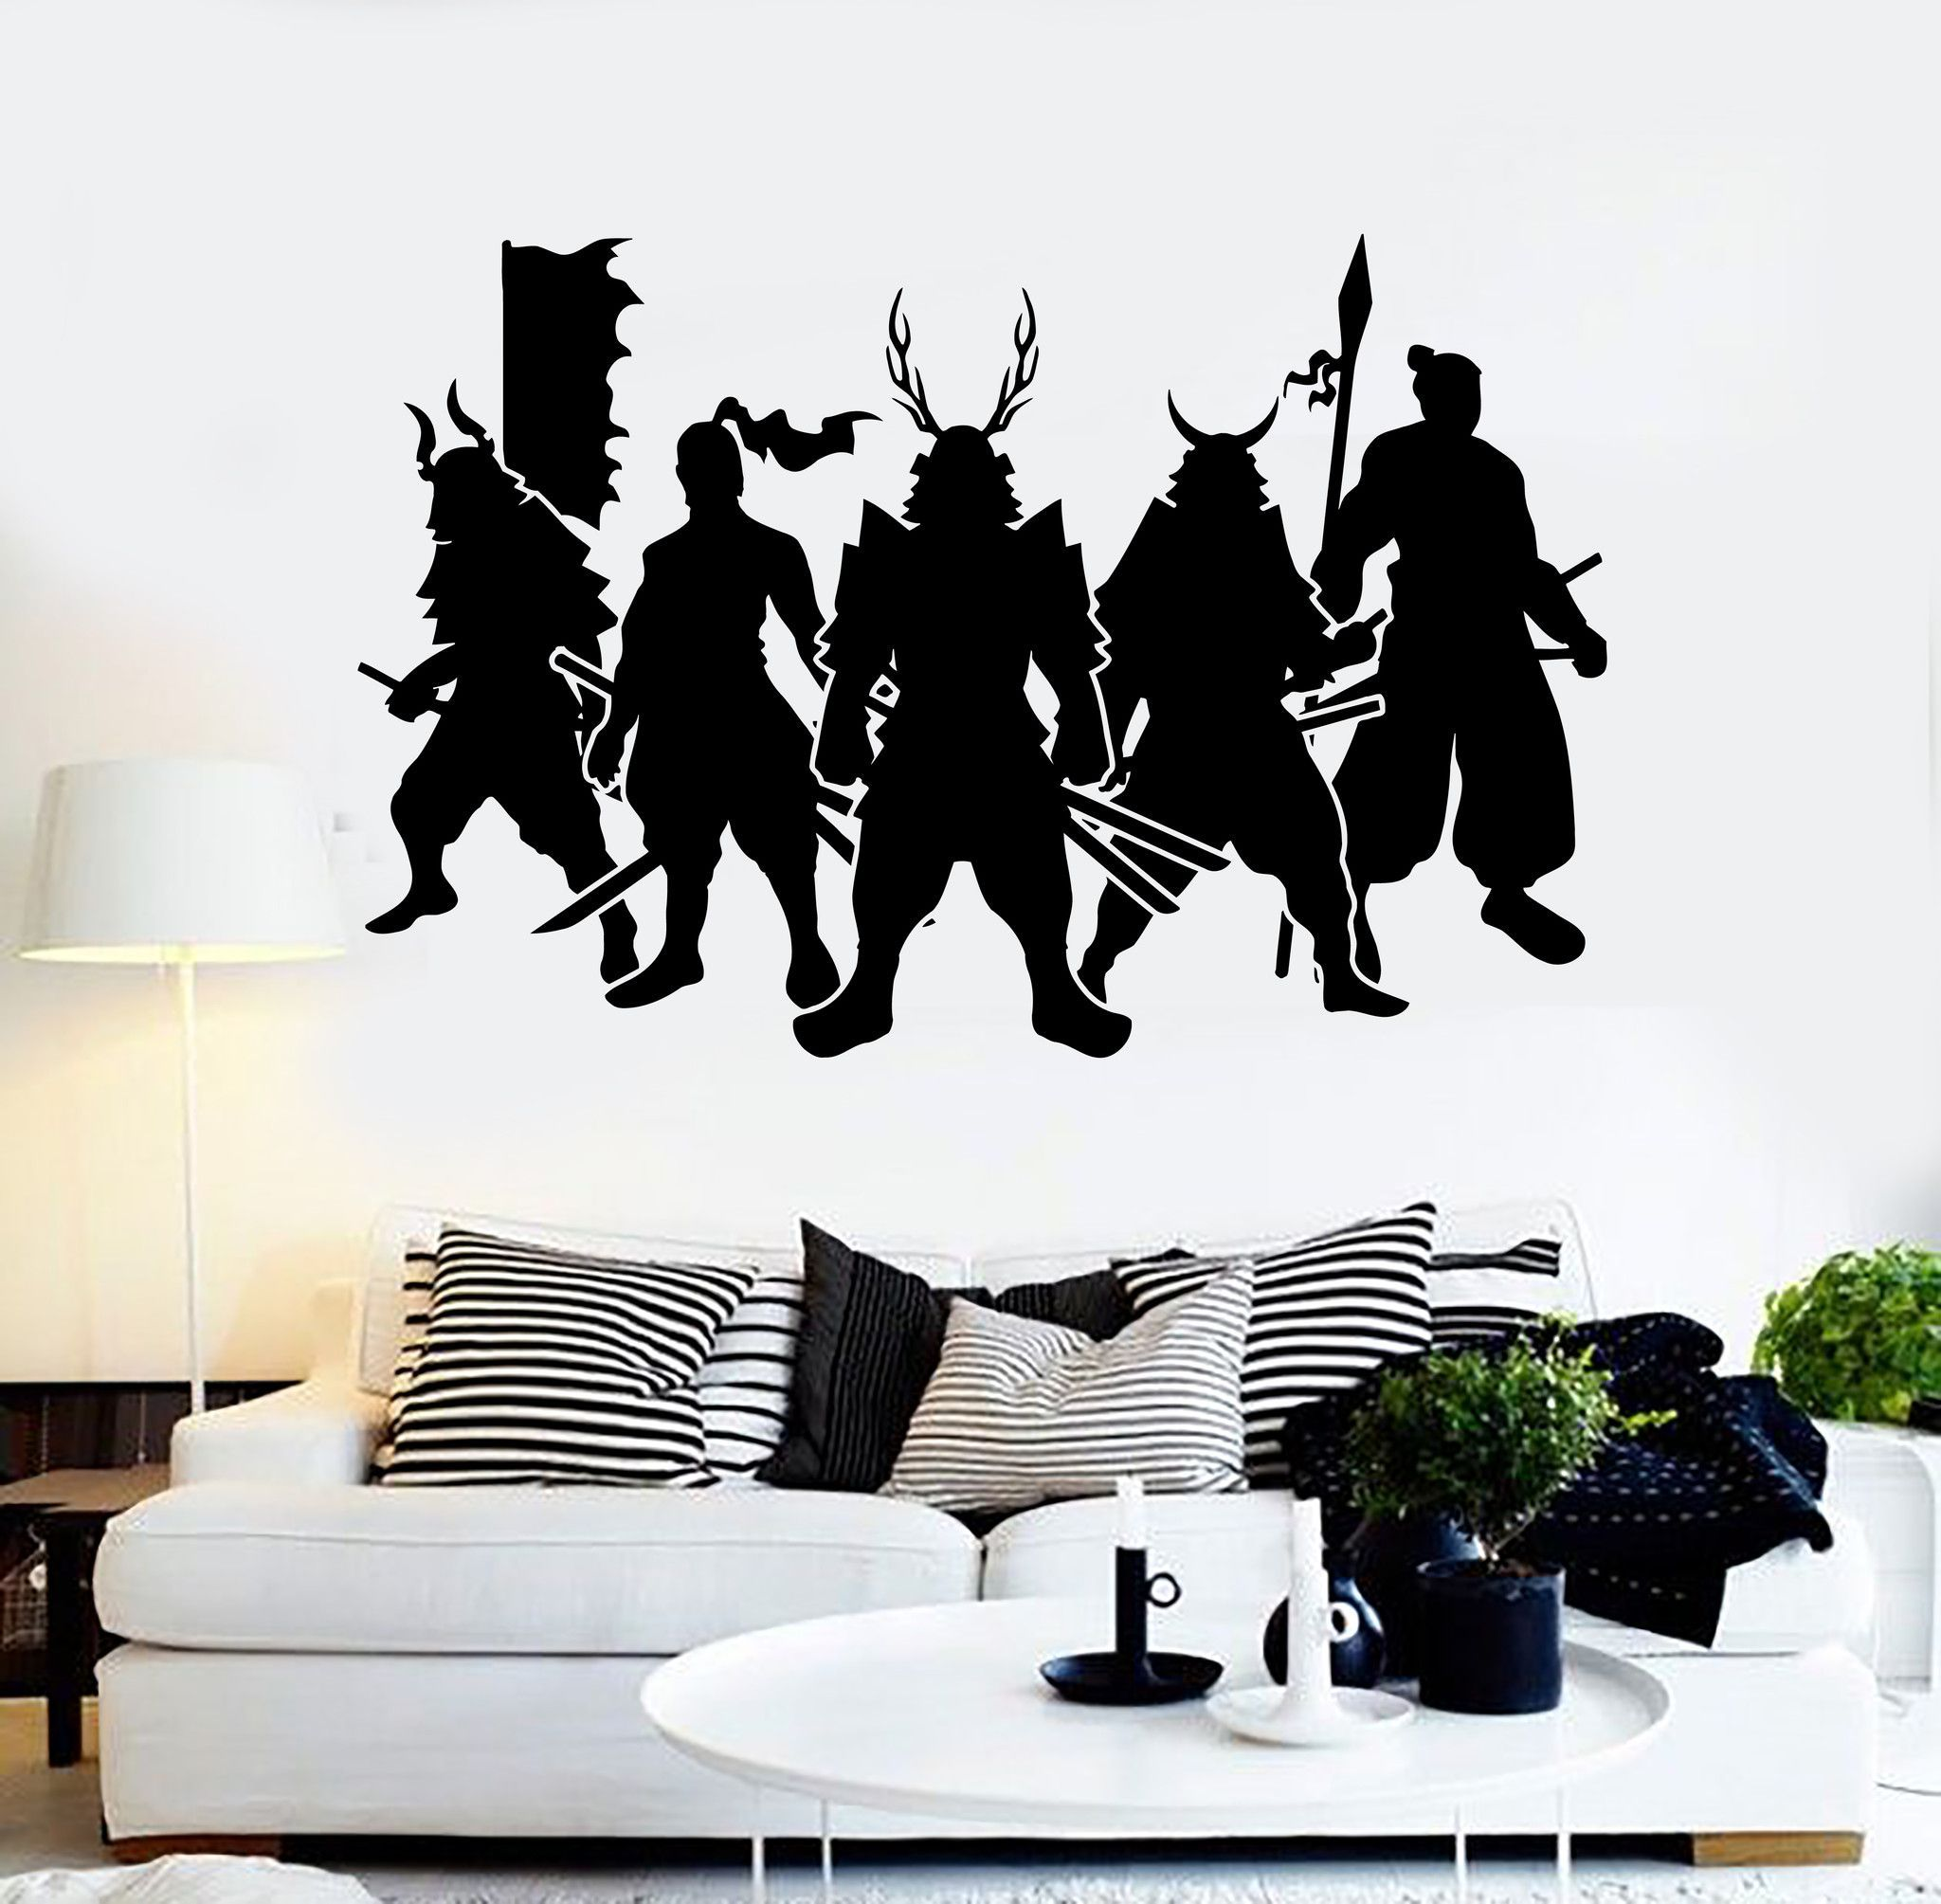 Vinyl Wall Decal Samurai Warriors Japan Art Japanese Stickers - Wall stickers decalswall decal wikipedia